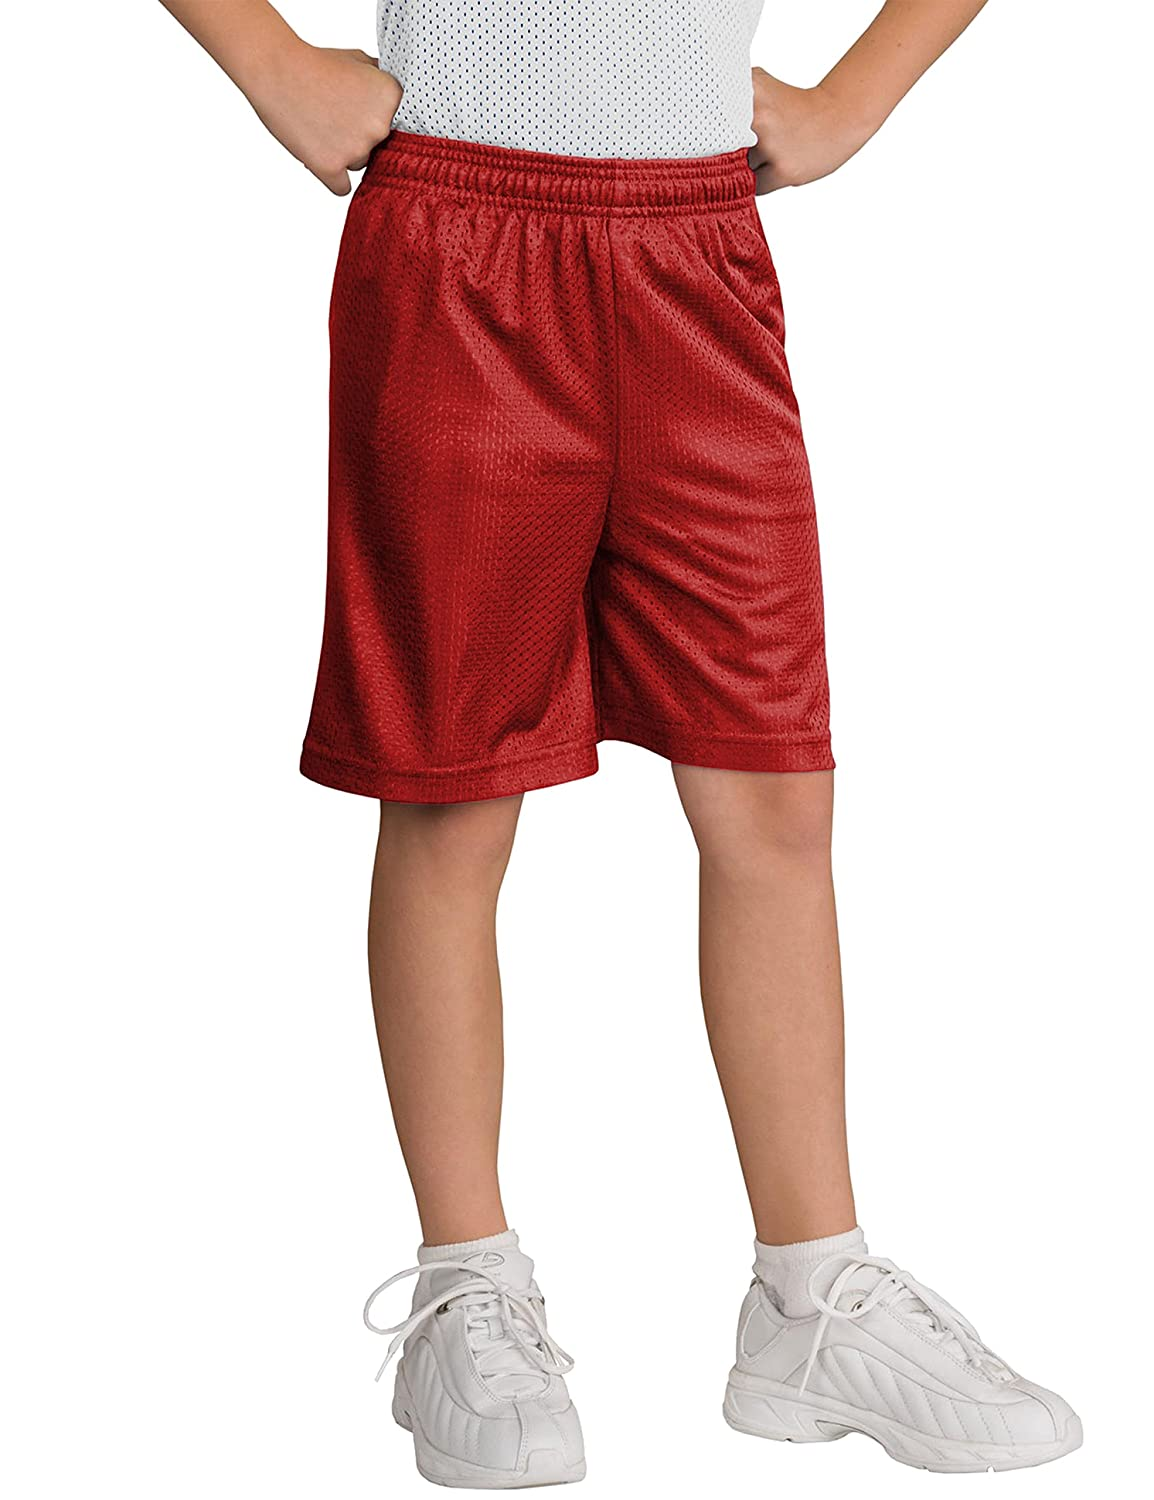 Hat and Beyond Kids Mesh Shorts Basketball Athletic Casual Sports Uniforms Jersey